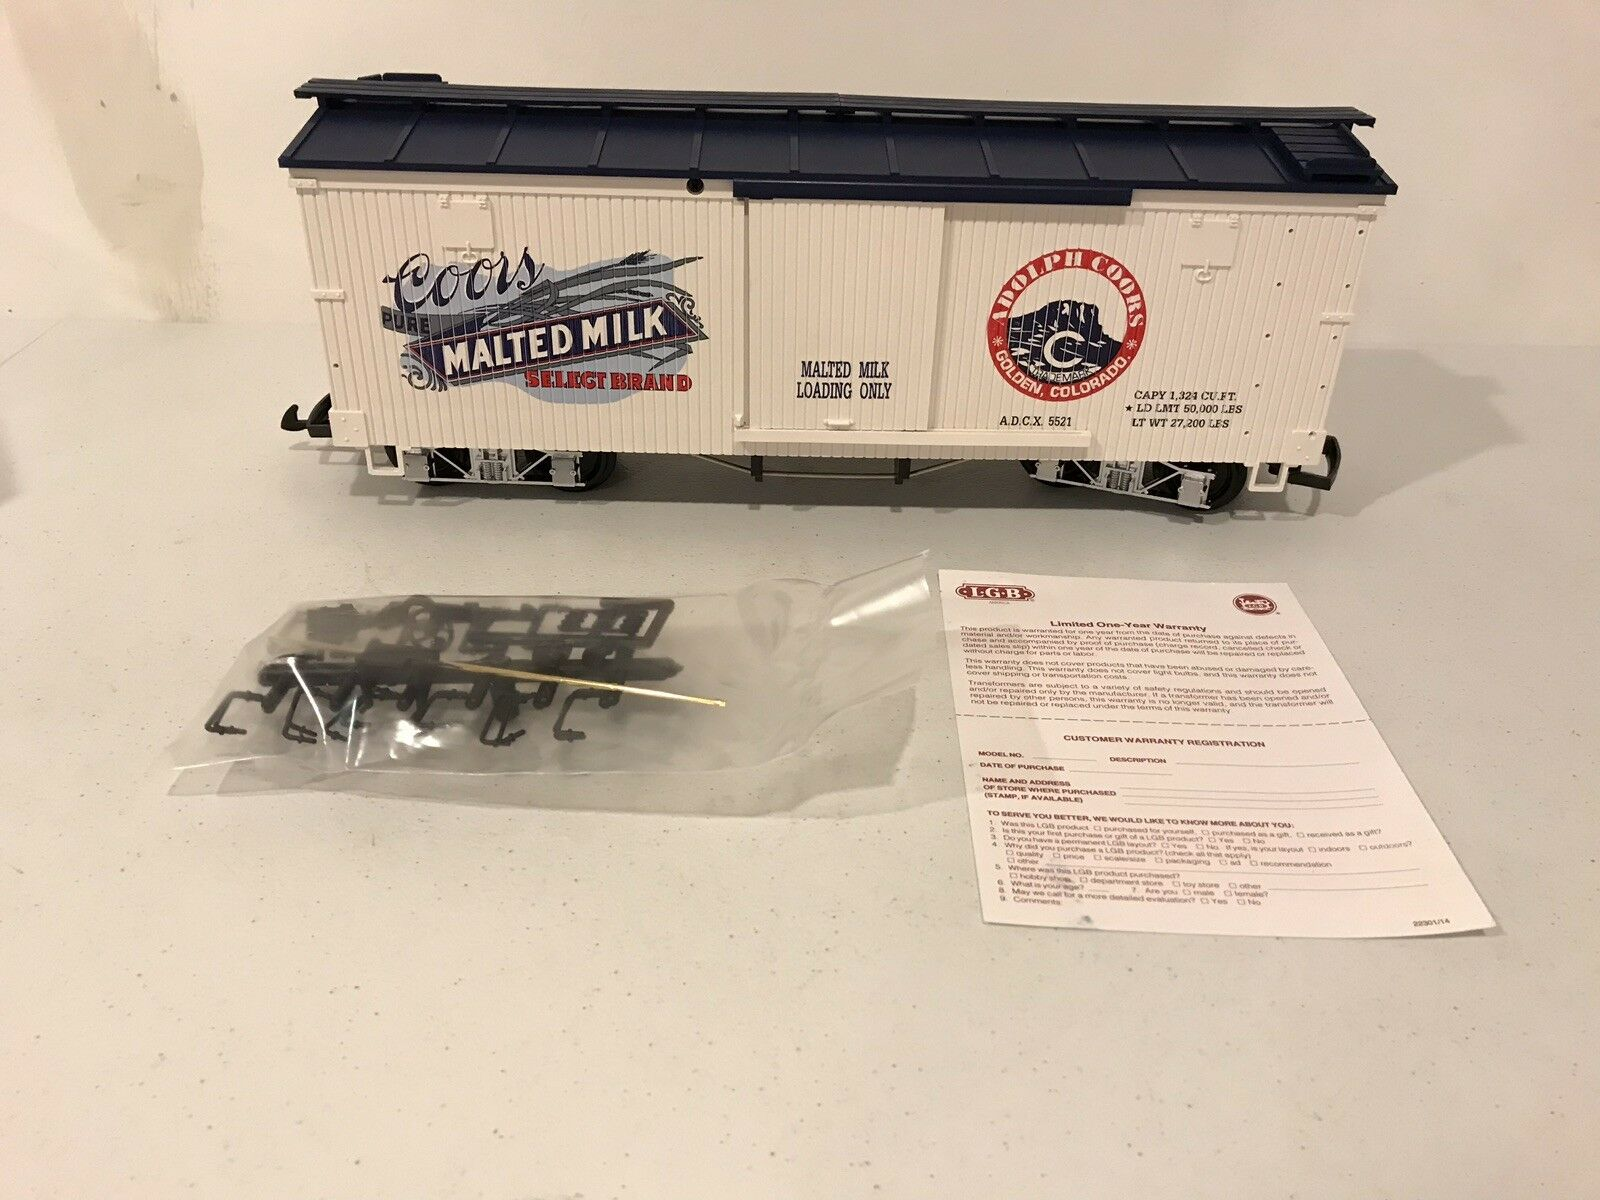 LGB G Scale 46670 Coors Malted Milk Box Car Collection Item